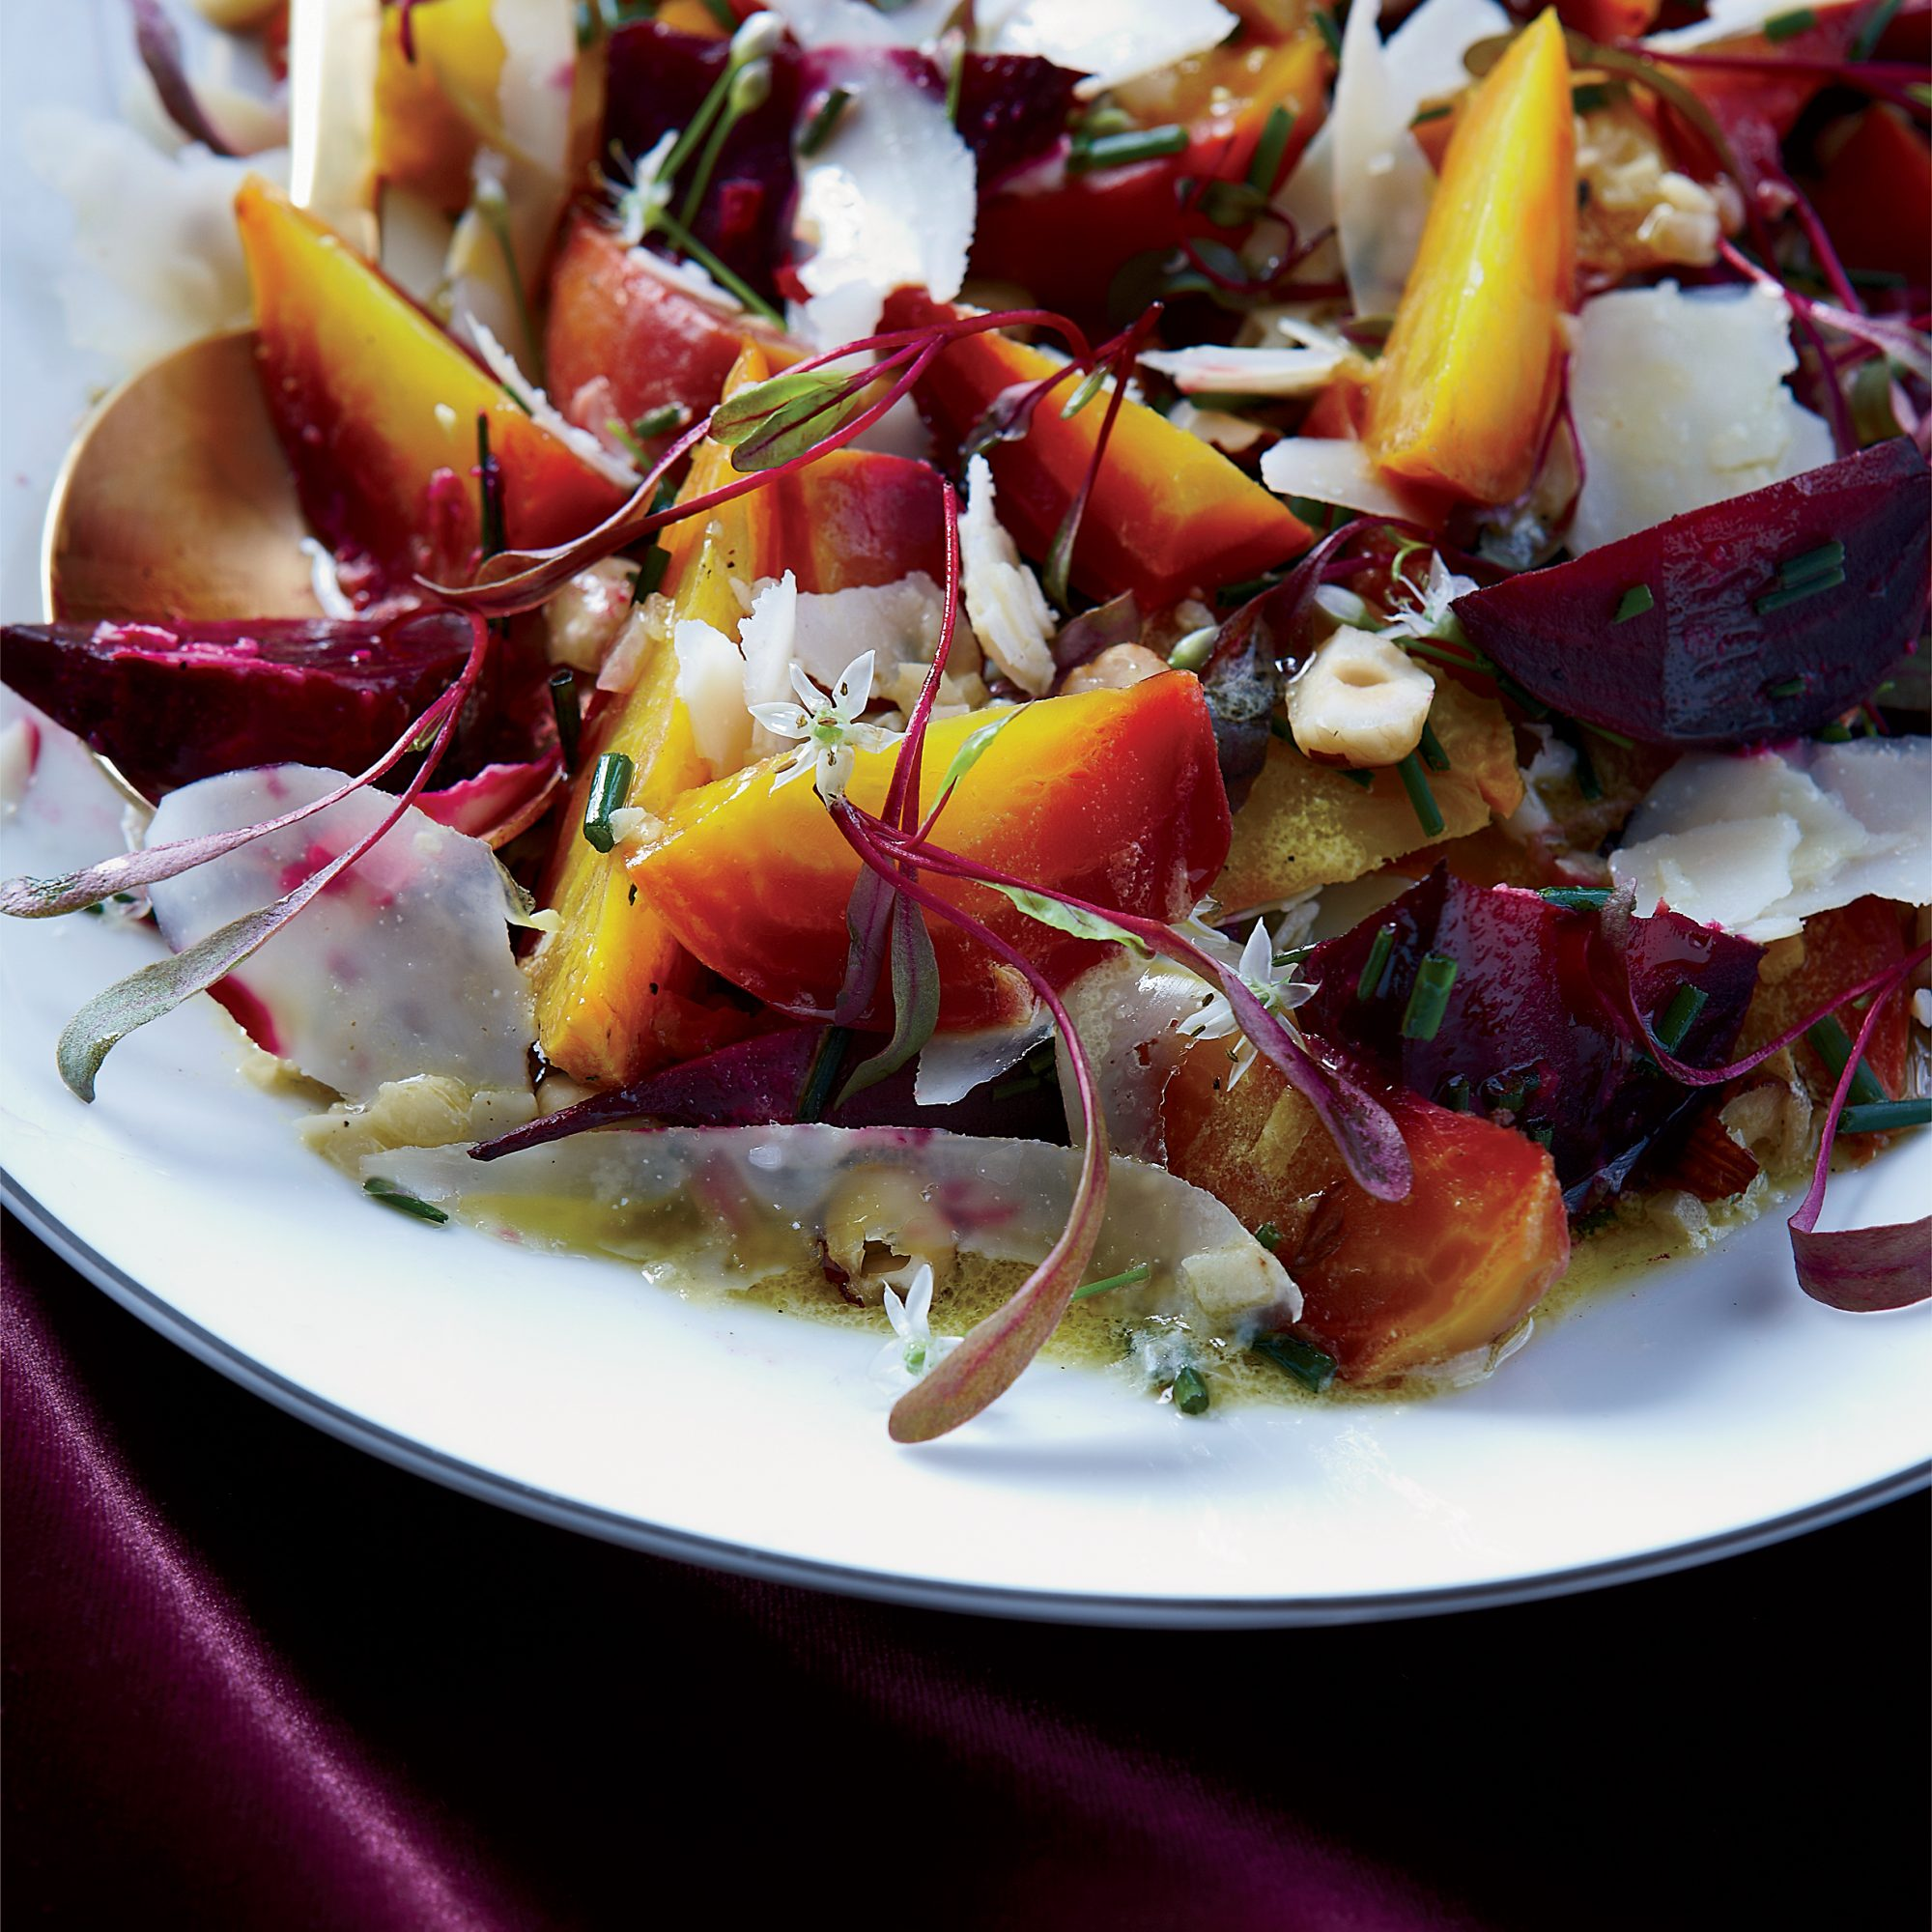 Roasted Beets with Hazelnuts and Goat Cheese